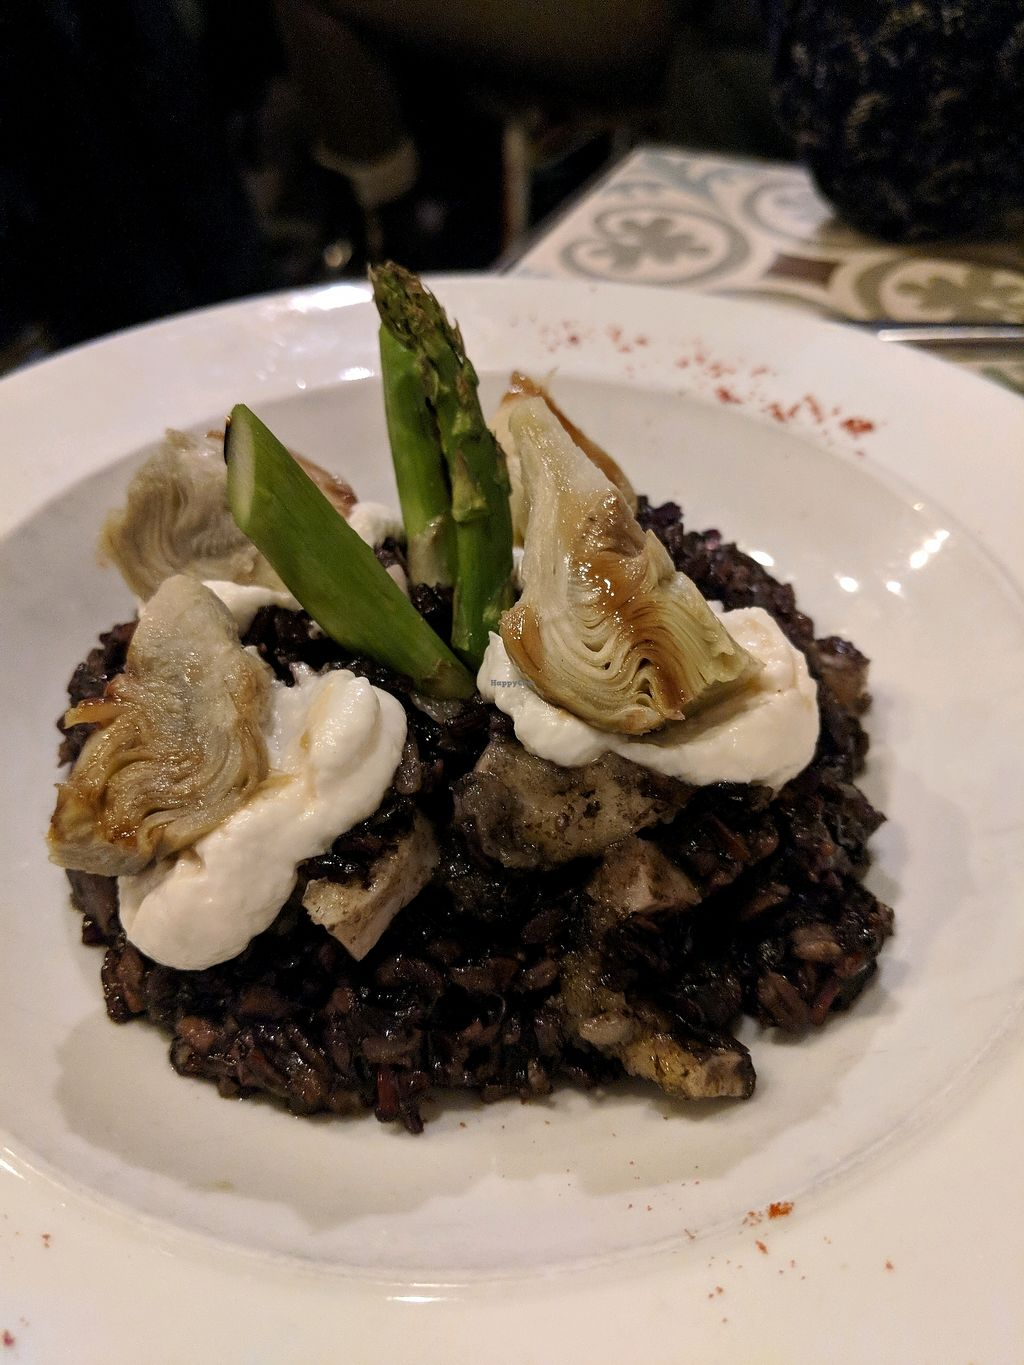 """Photo of VEGA  by <a href=""""/members/profile/Heners37"""">Heners37</a> <br/>black rice with """"squid"""" <br/> March 31, 2018  - <a href='/contact/abuse/image/54785/378611'>Report</a>"""